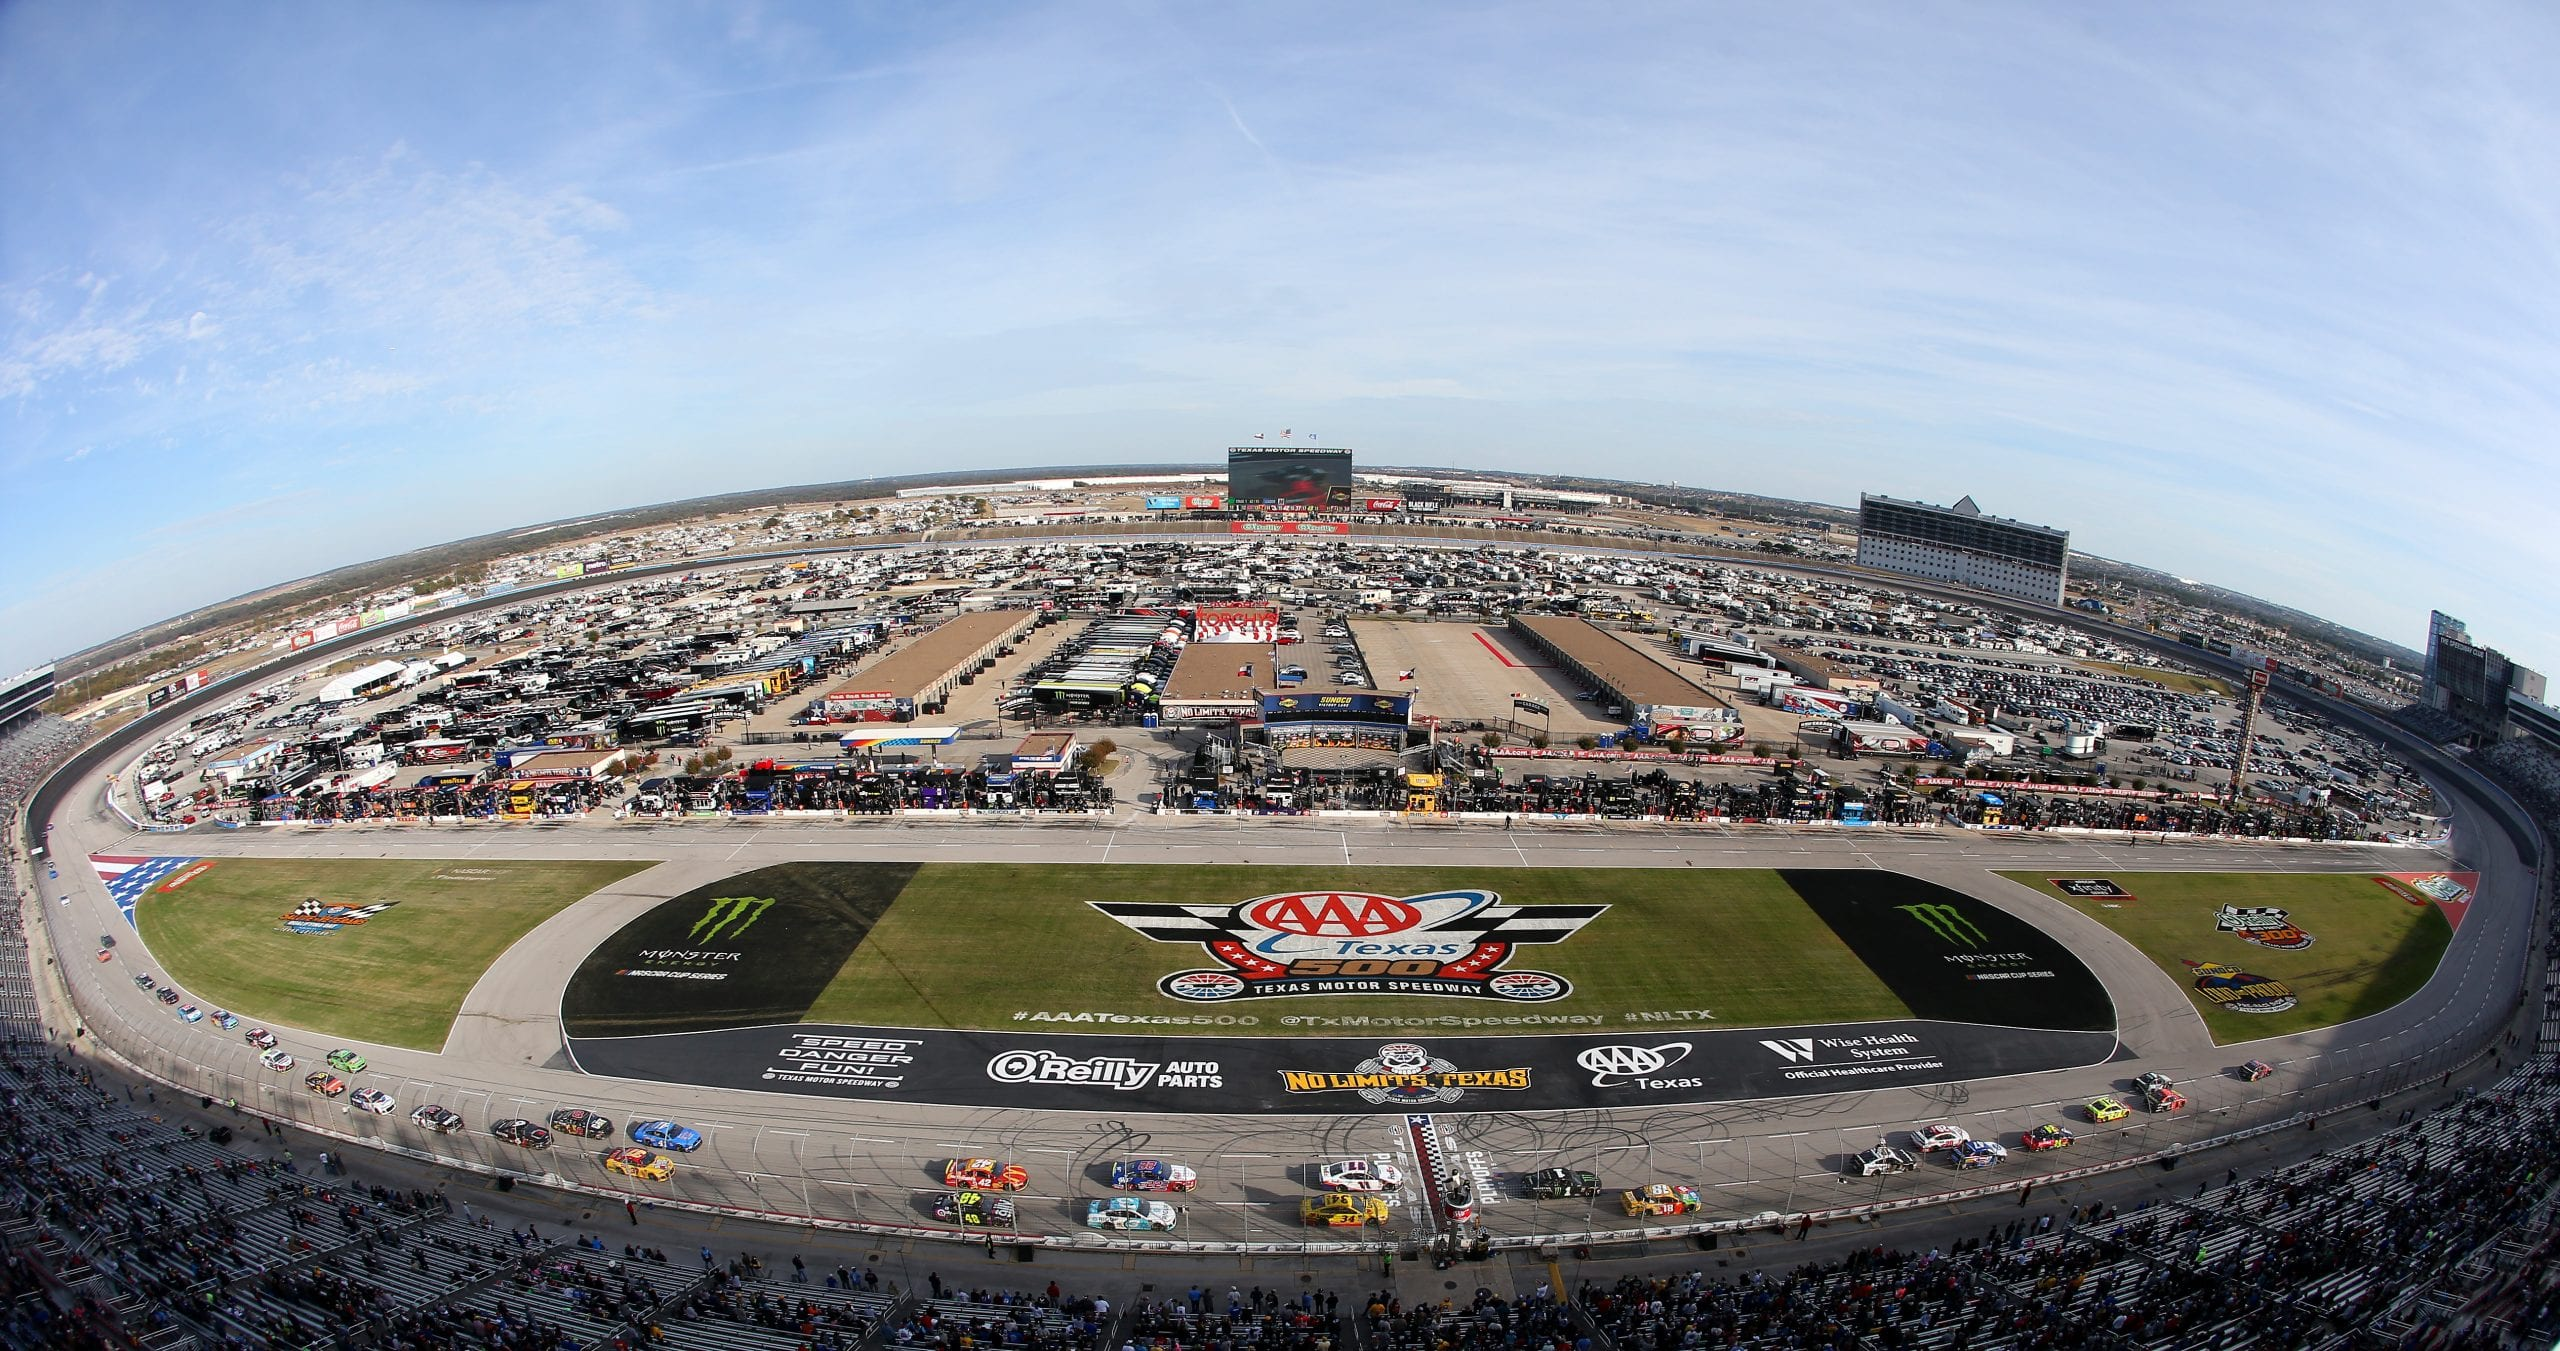 View from the track at Texas Motor Speedway